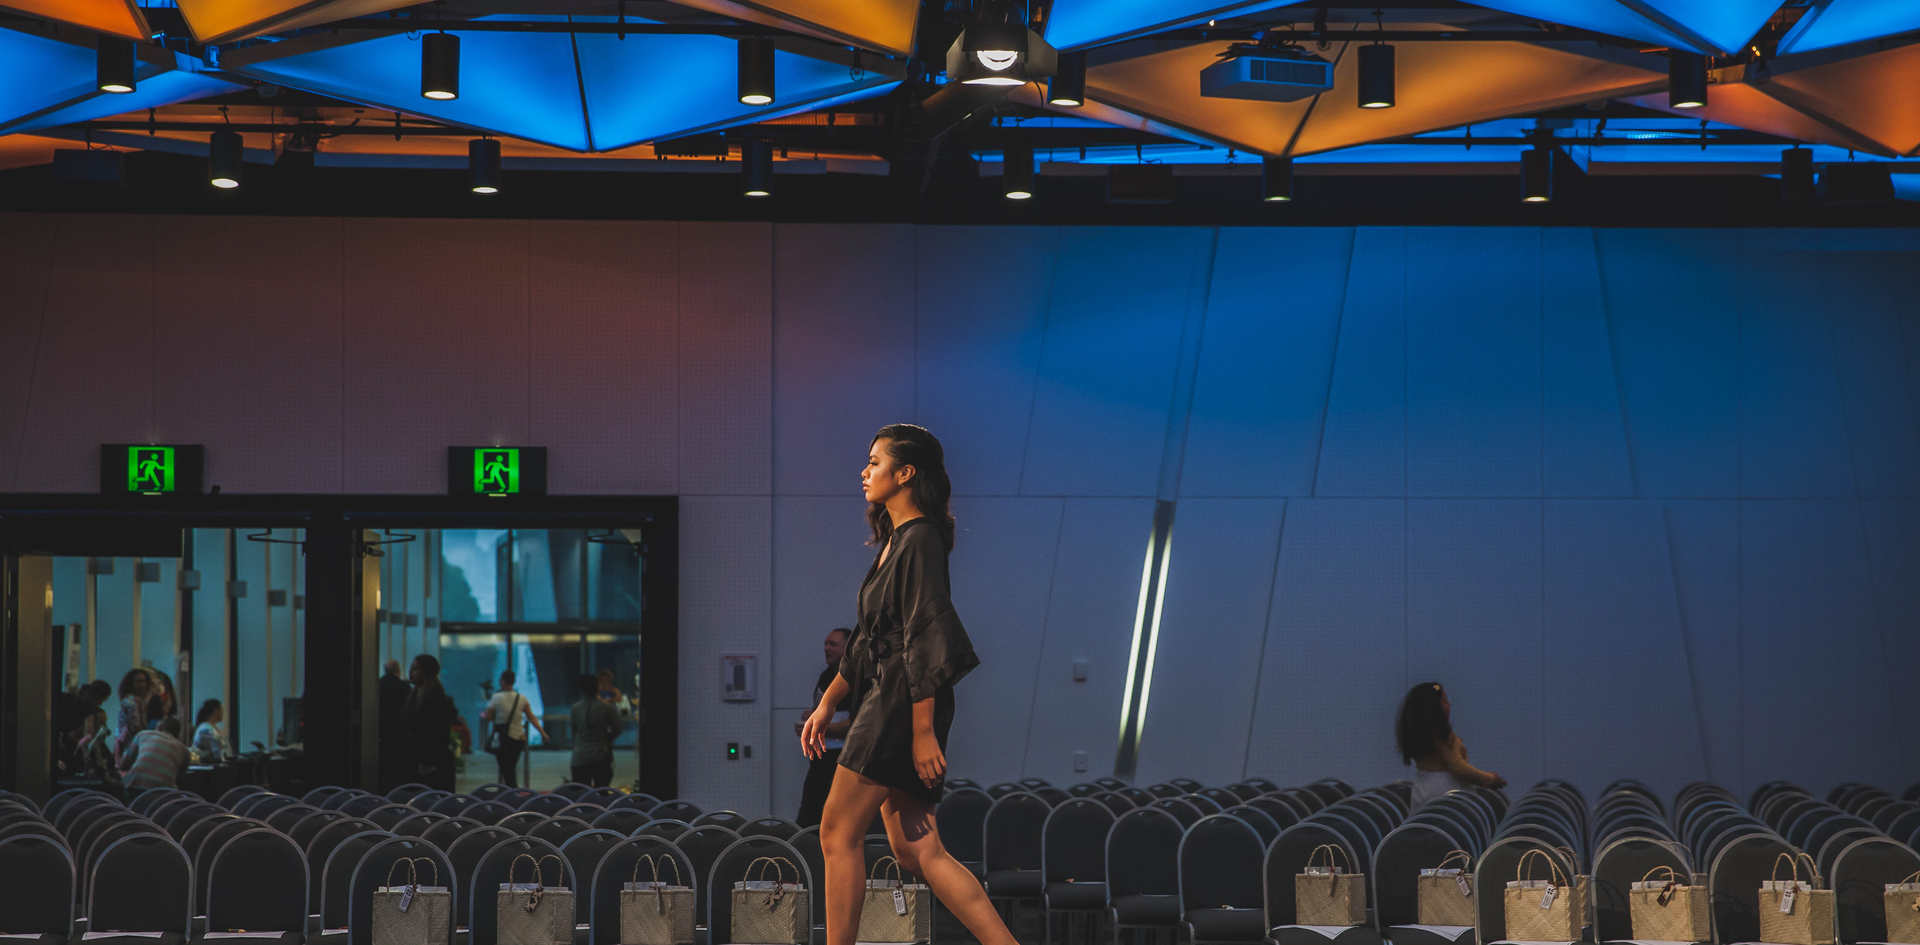 Testing out the runway - Faith Ane